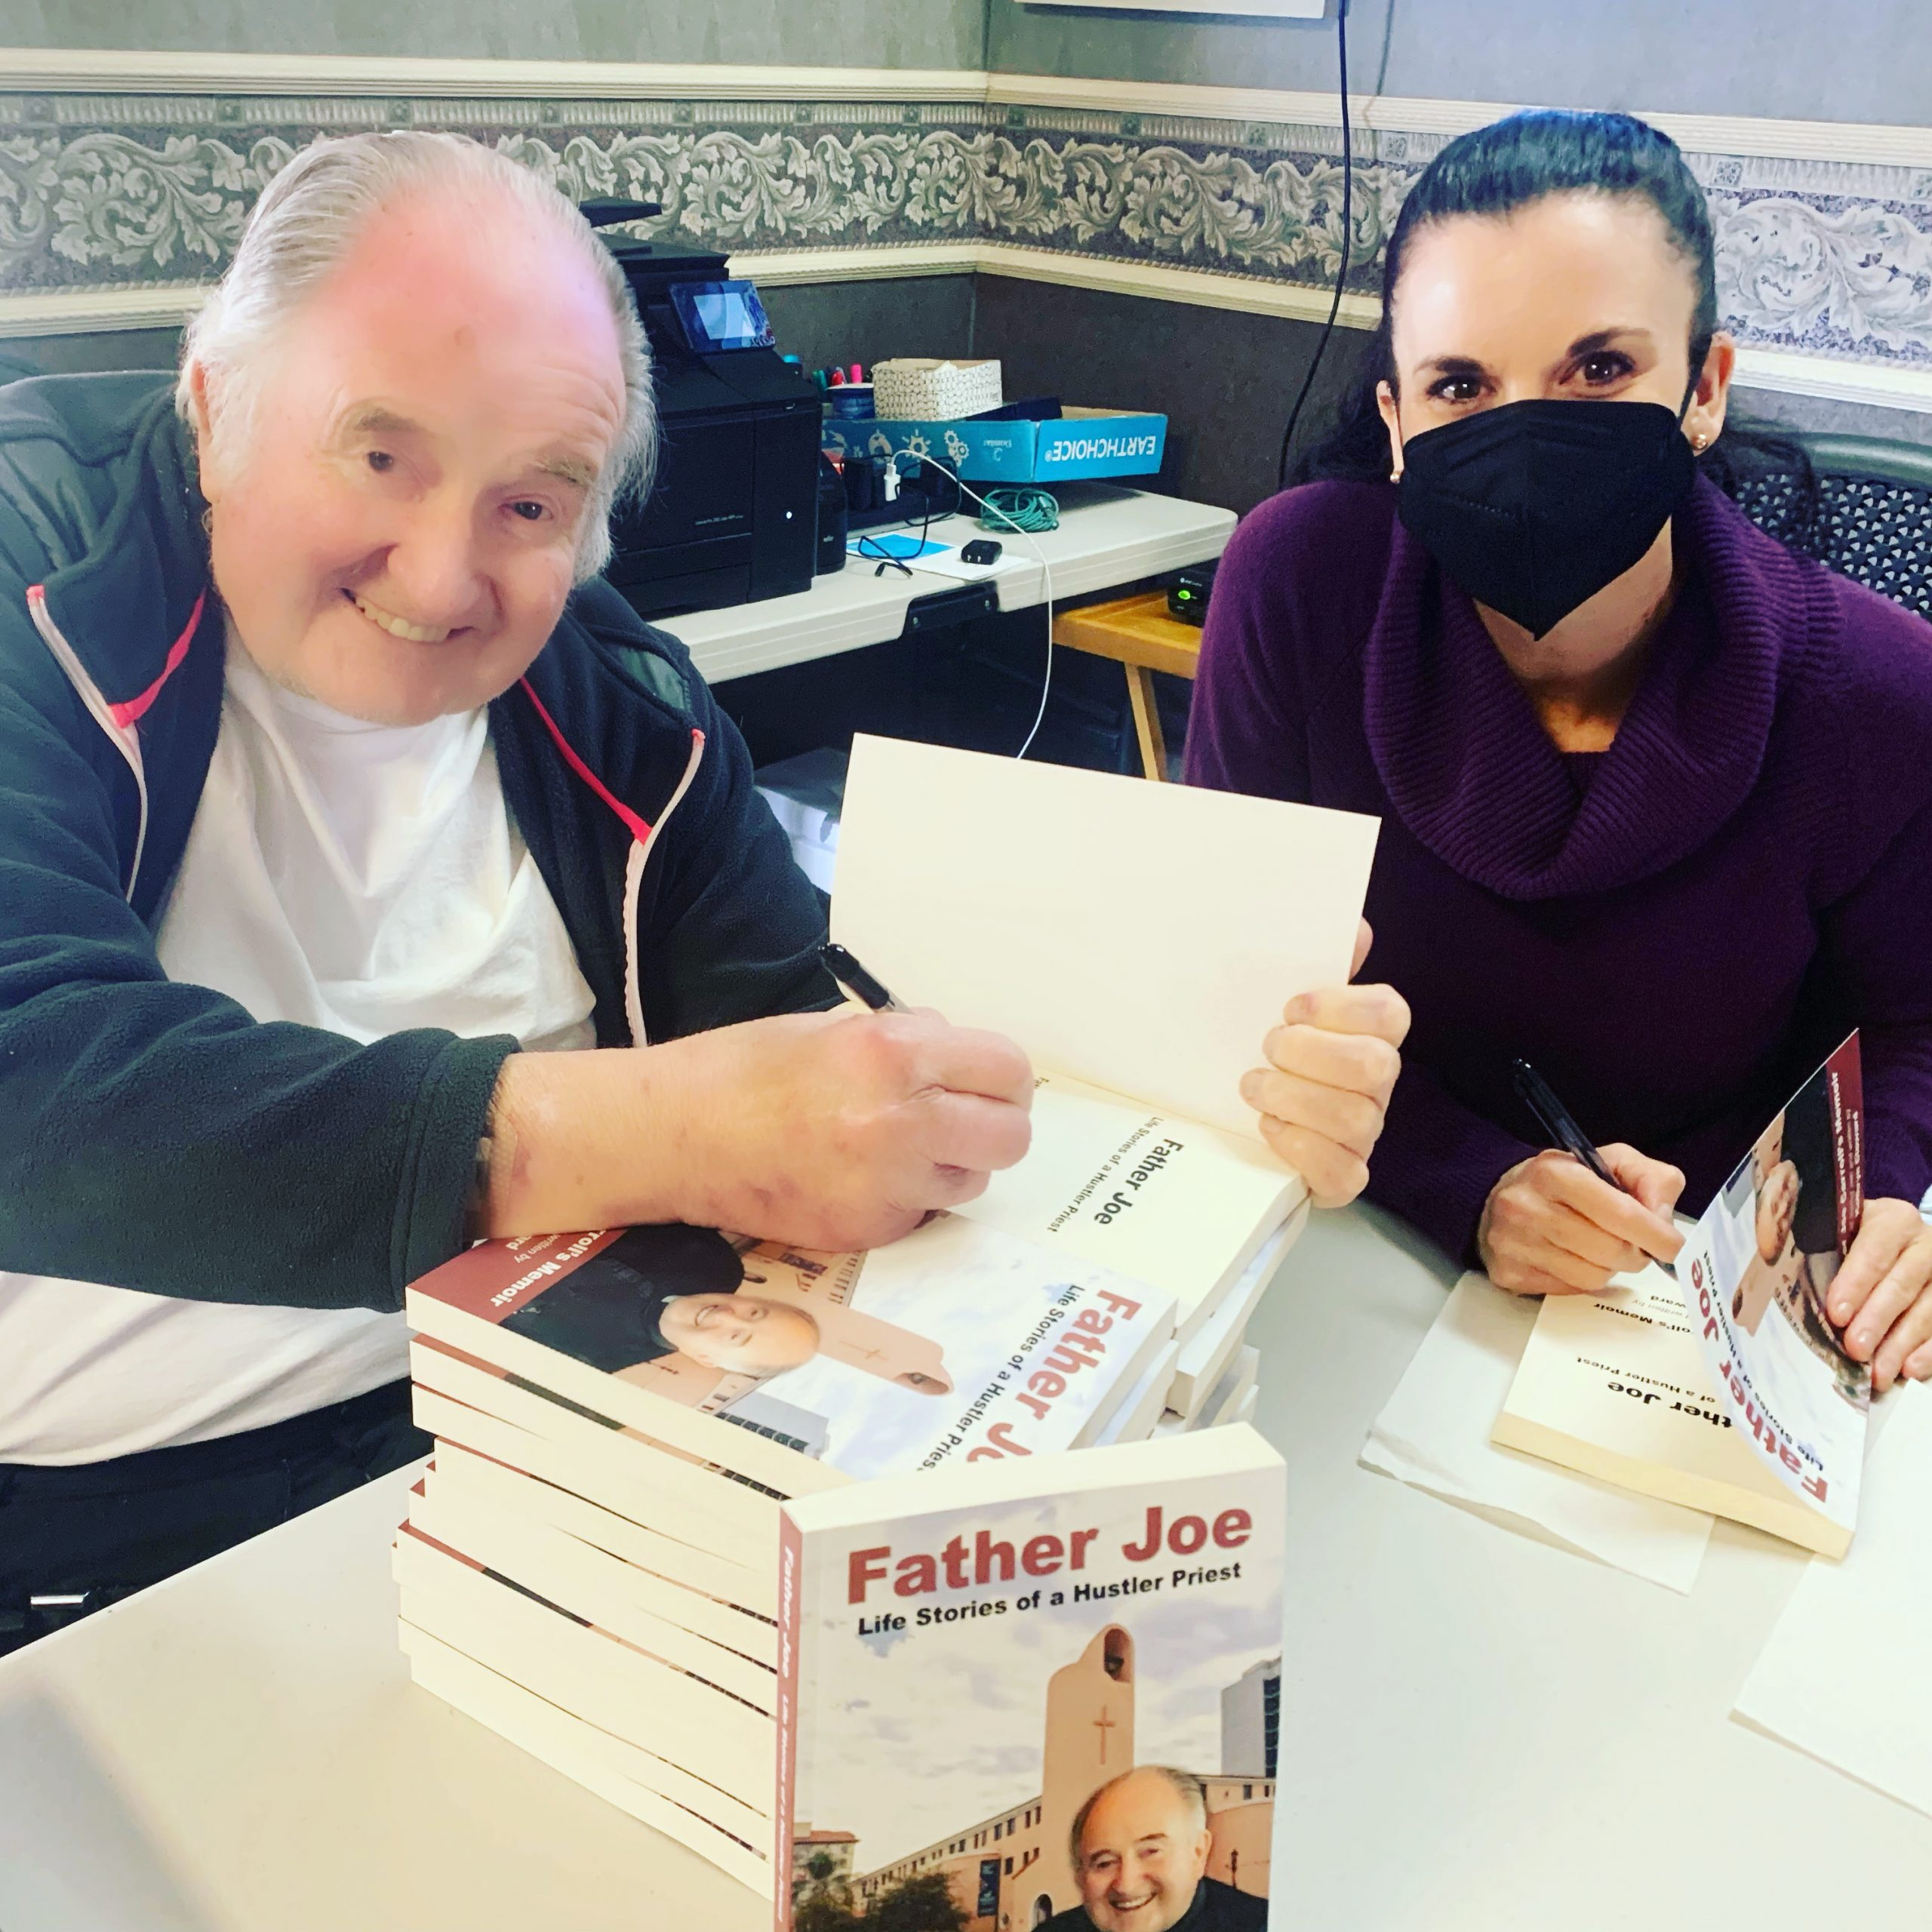 Father Joe and Kathryn Cloward signing Father Joe Life Stories of a Hustler Priest